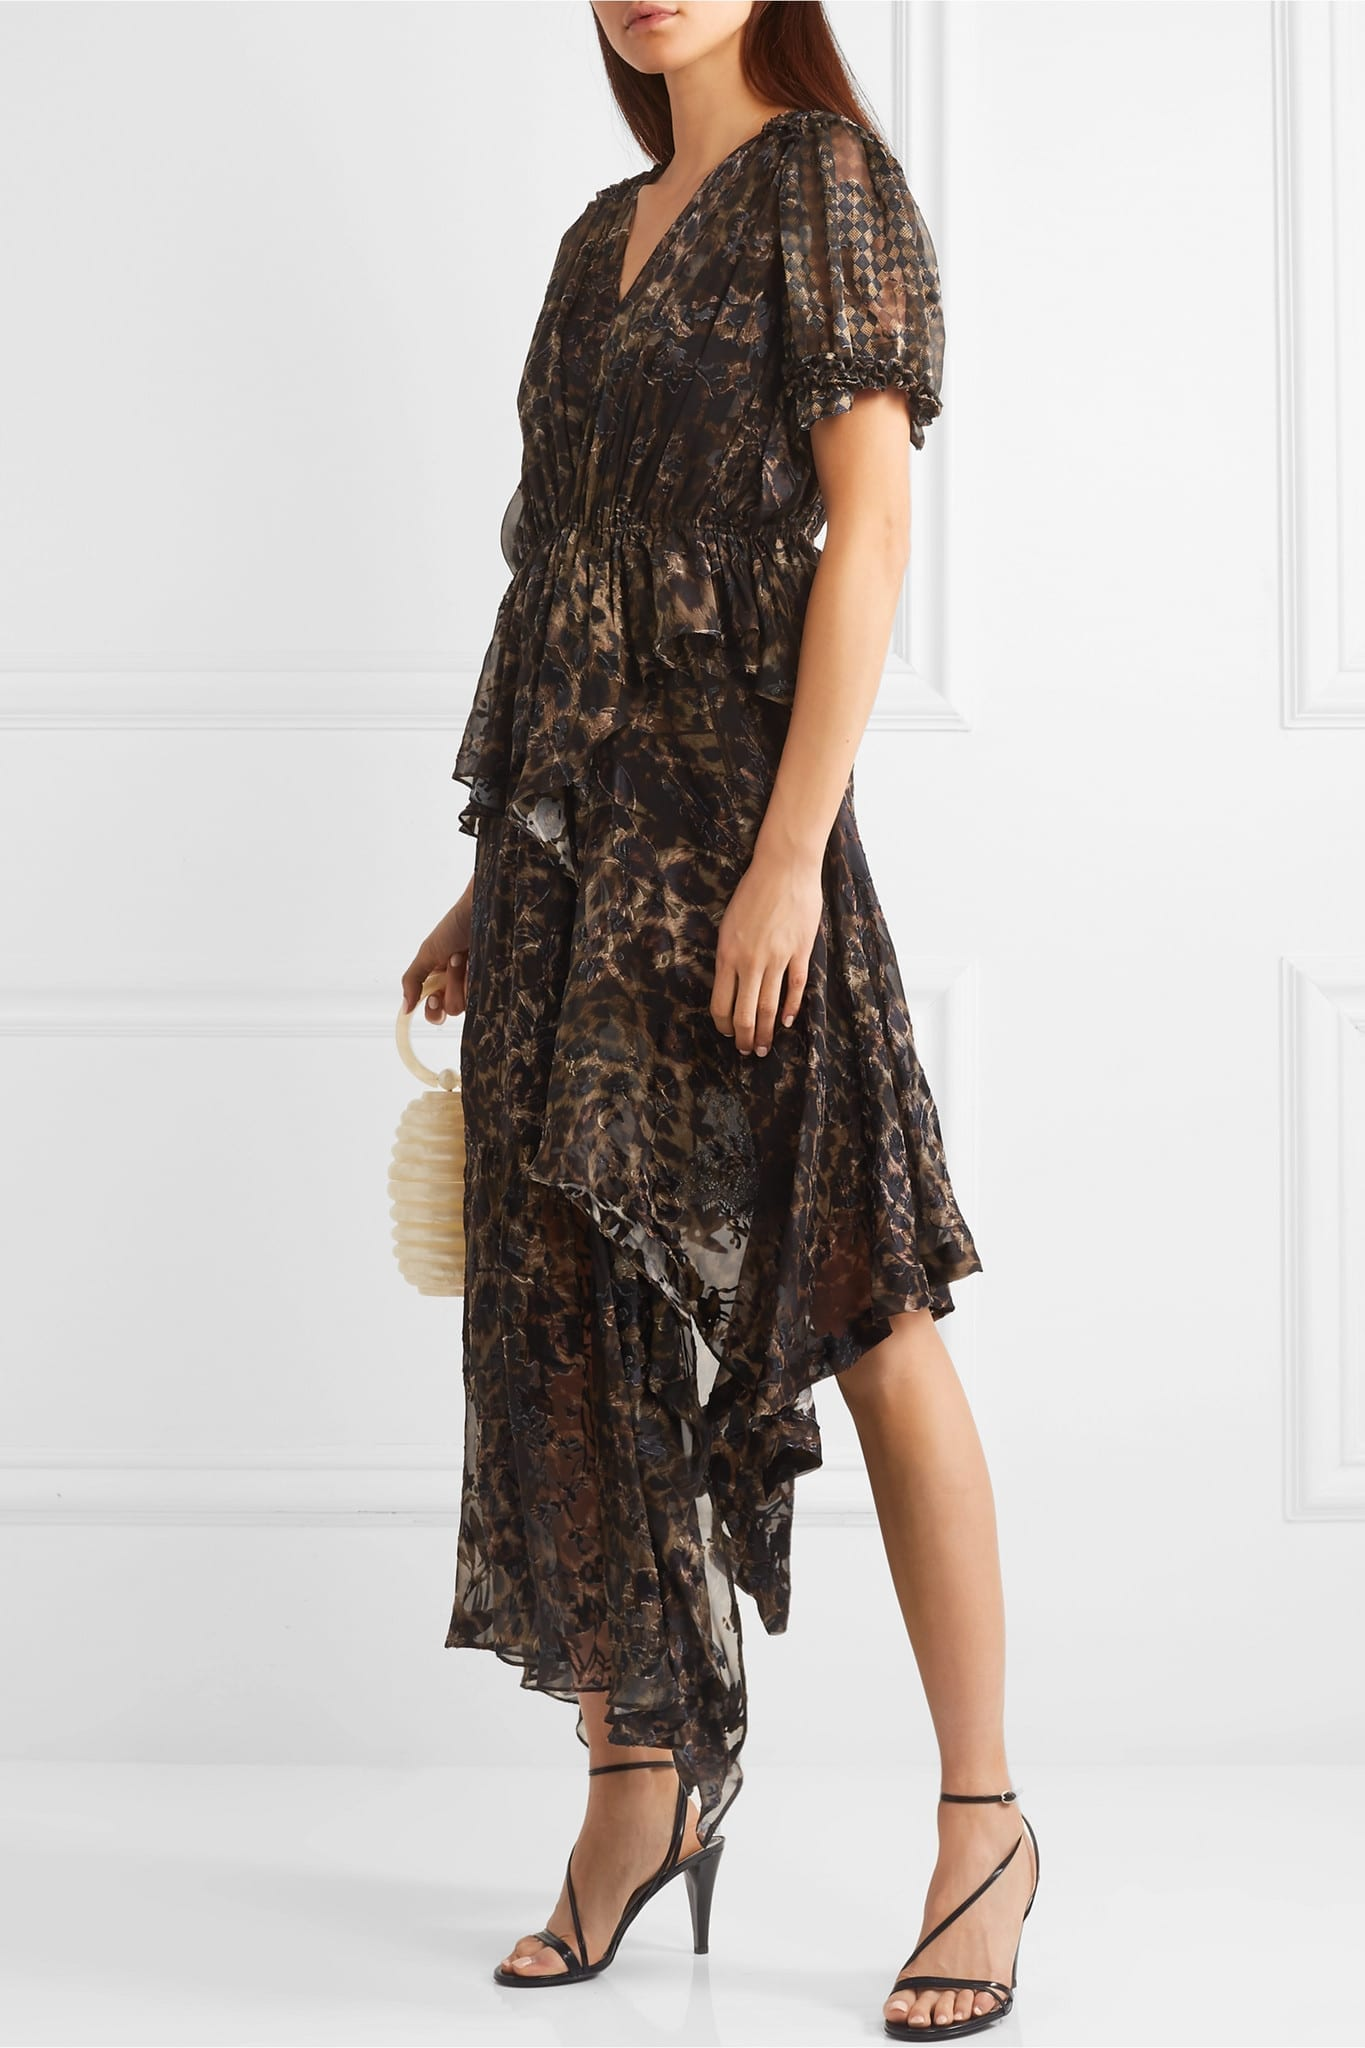 PREEN BY THORNTON BREGAZZI Esther Asymmetric Ruffled Leopard-print Devoré-chiffon Dress